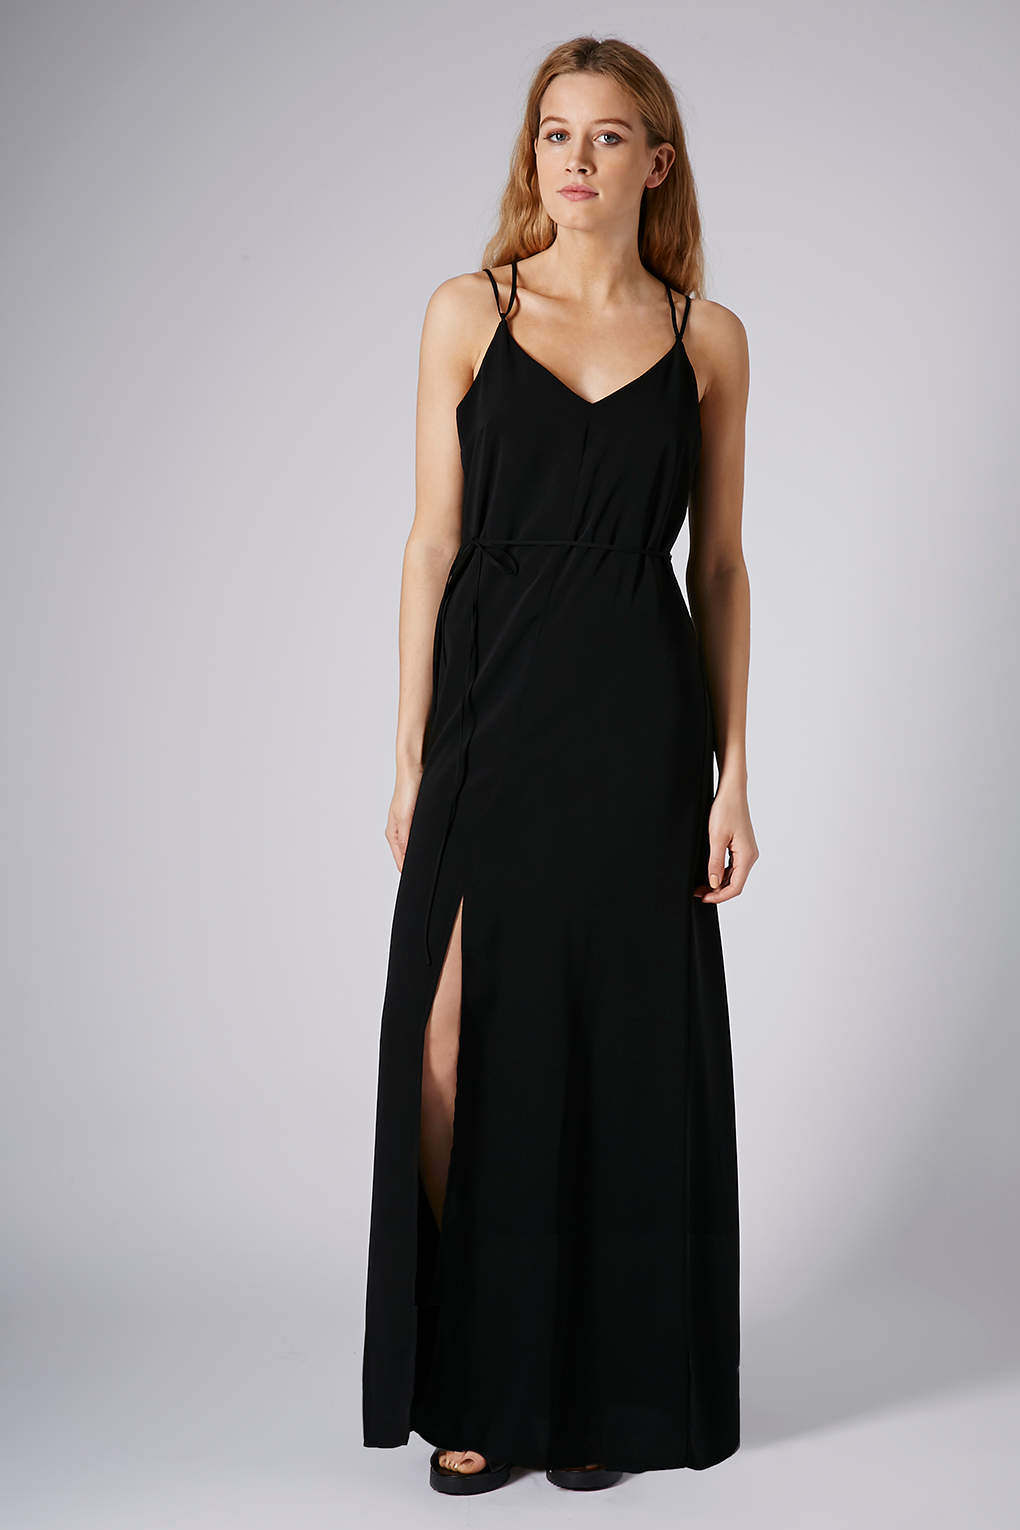 Topshop Strappy Cross Back Maxi Dress In Black Lyst